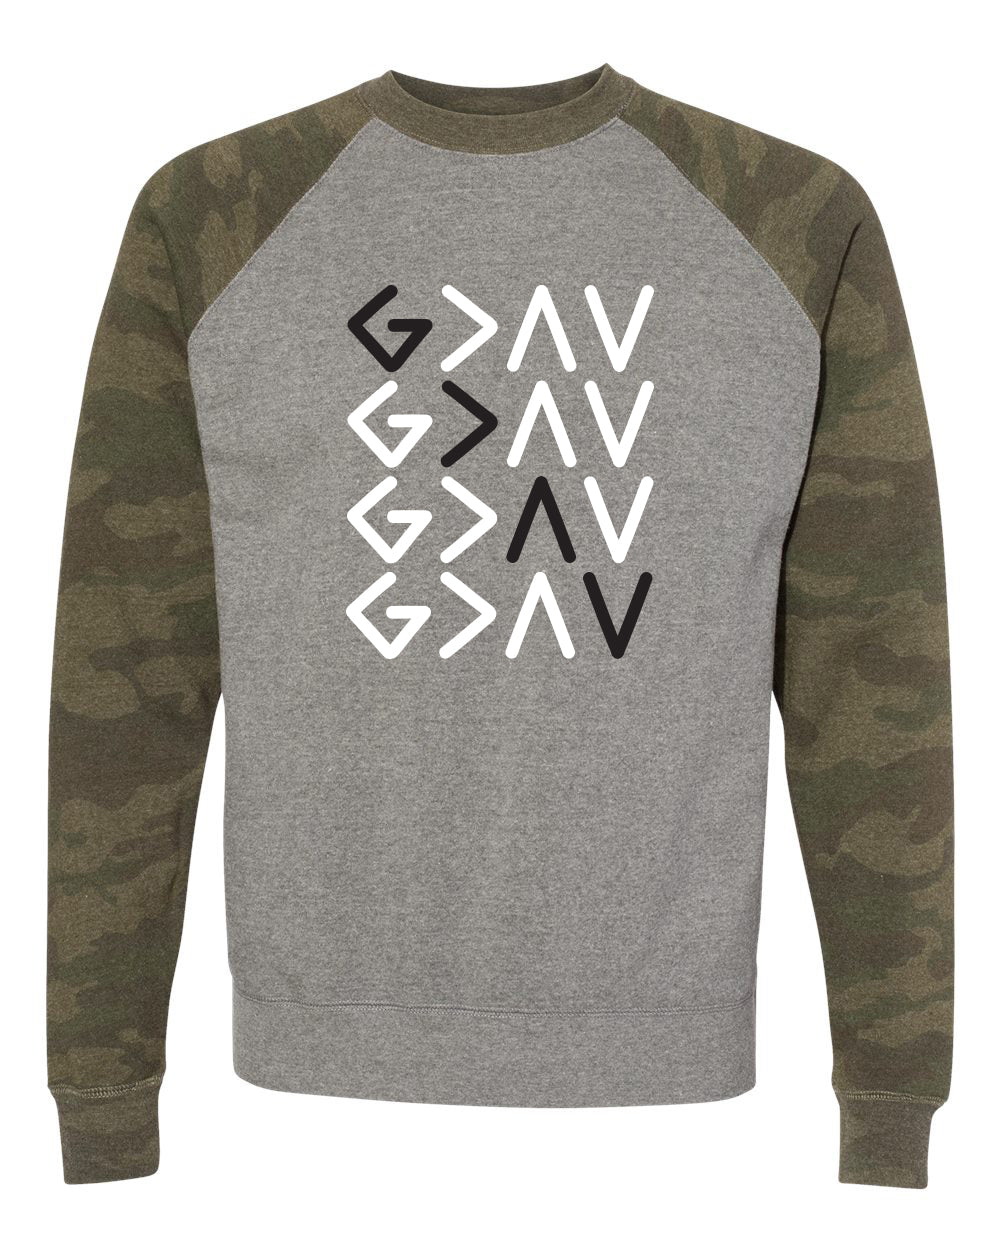 God is Greater than the Highs & Lows - Camo Crewneck